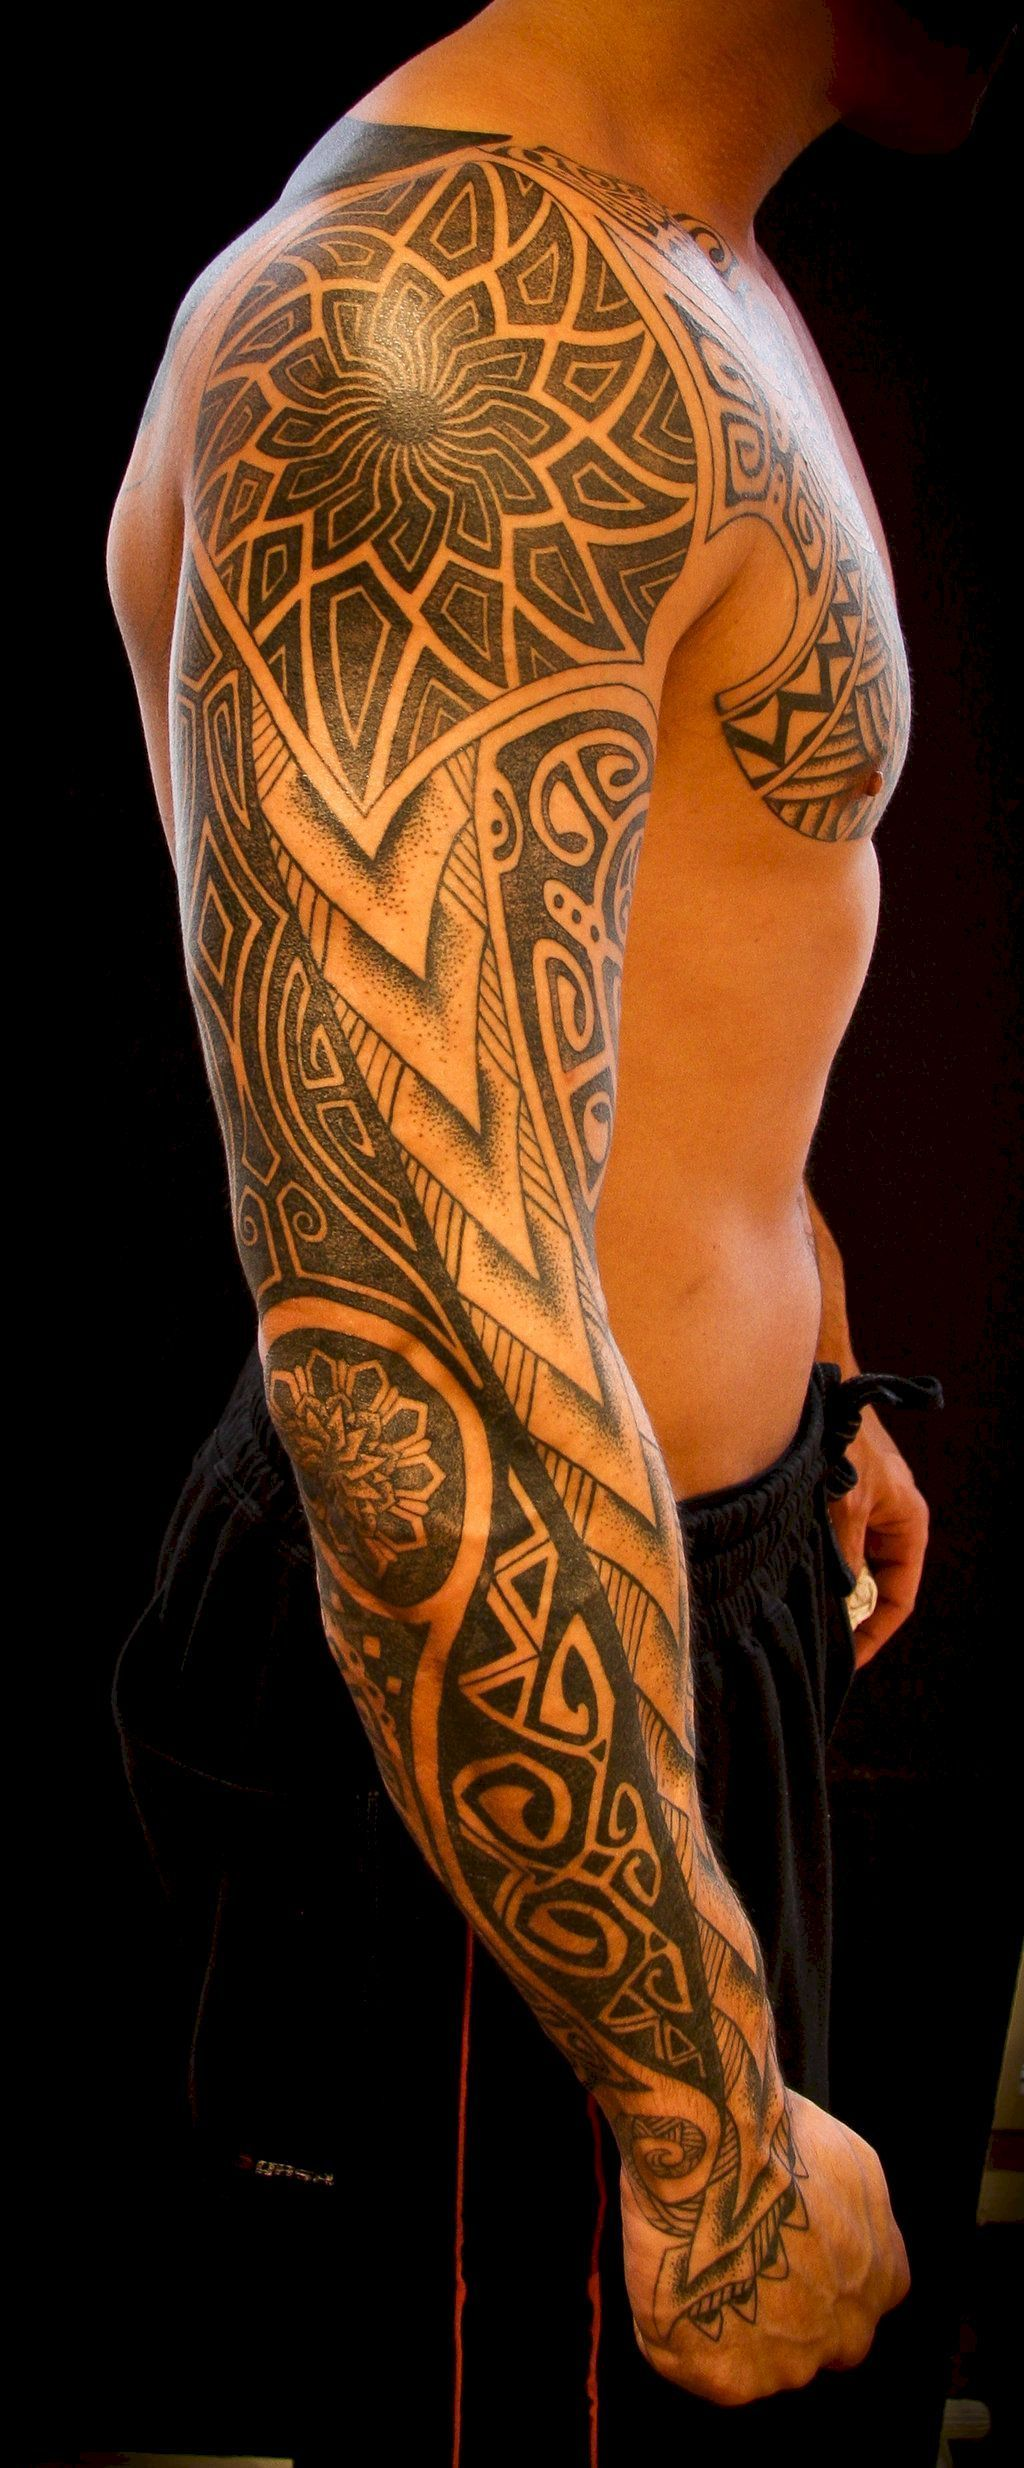 tattoo designs for men the best tattoo ideas for guys - 600×1445